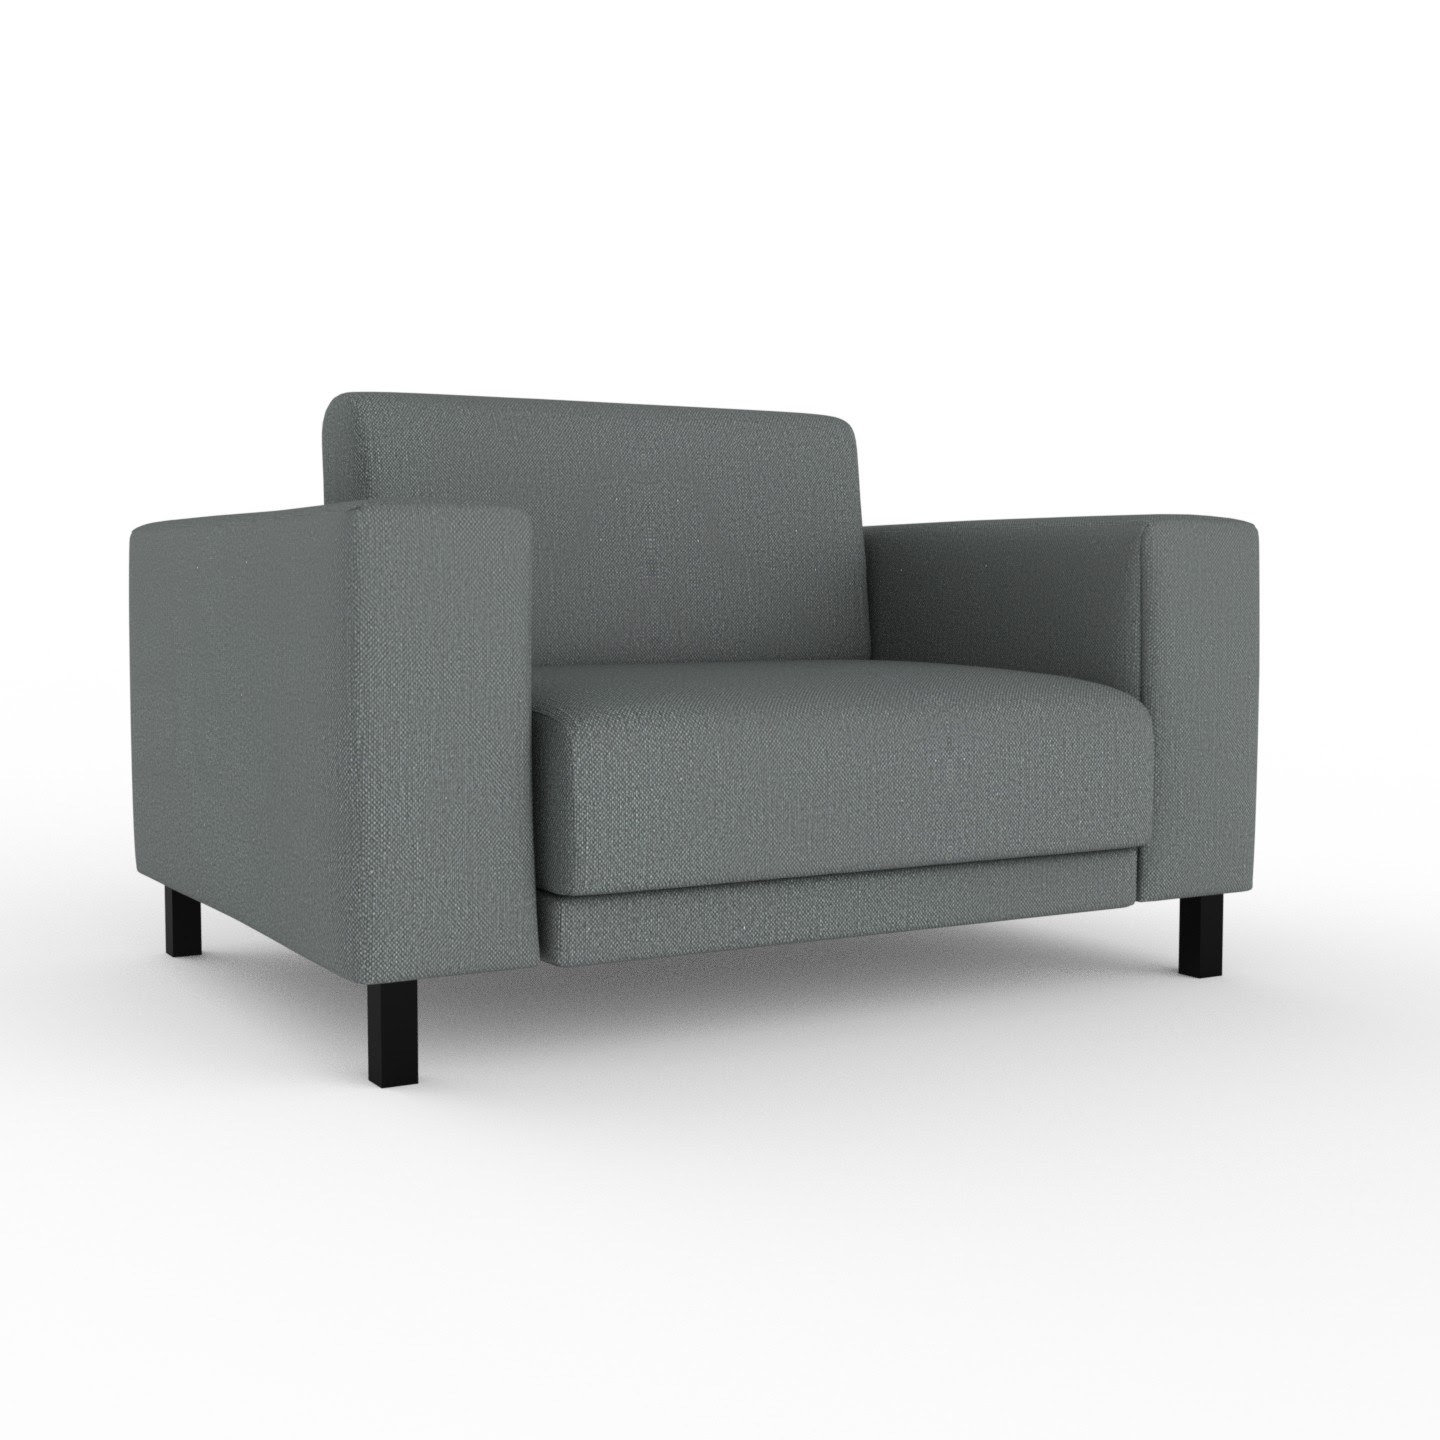 Sessel Runde Form Sessel Runde Form Fabulous Sofa Runde Form Deutsche Dekor